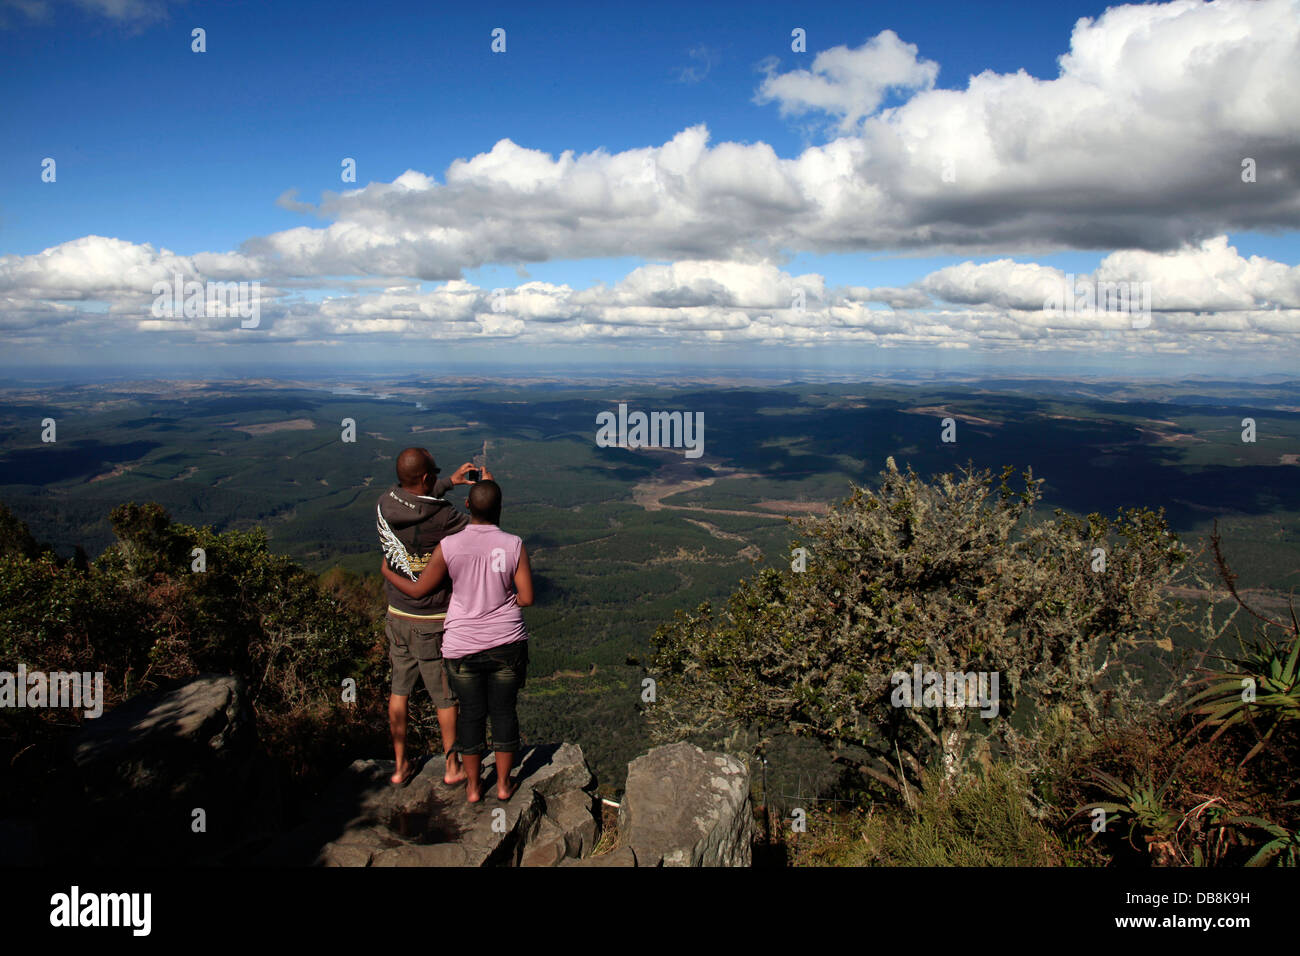 tourists taking a photo at Wonderview, near God's Window in Blyde River Canyon, Mpumalanga - Stock Image